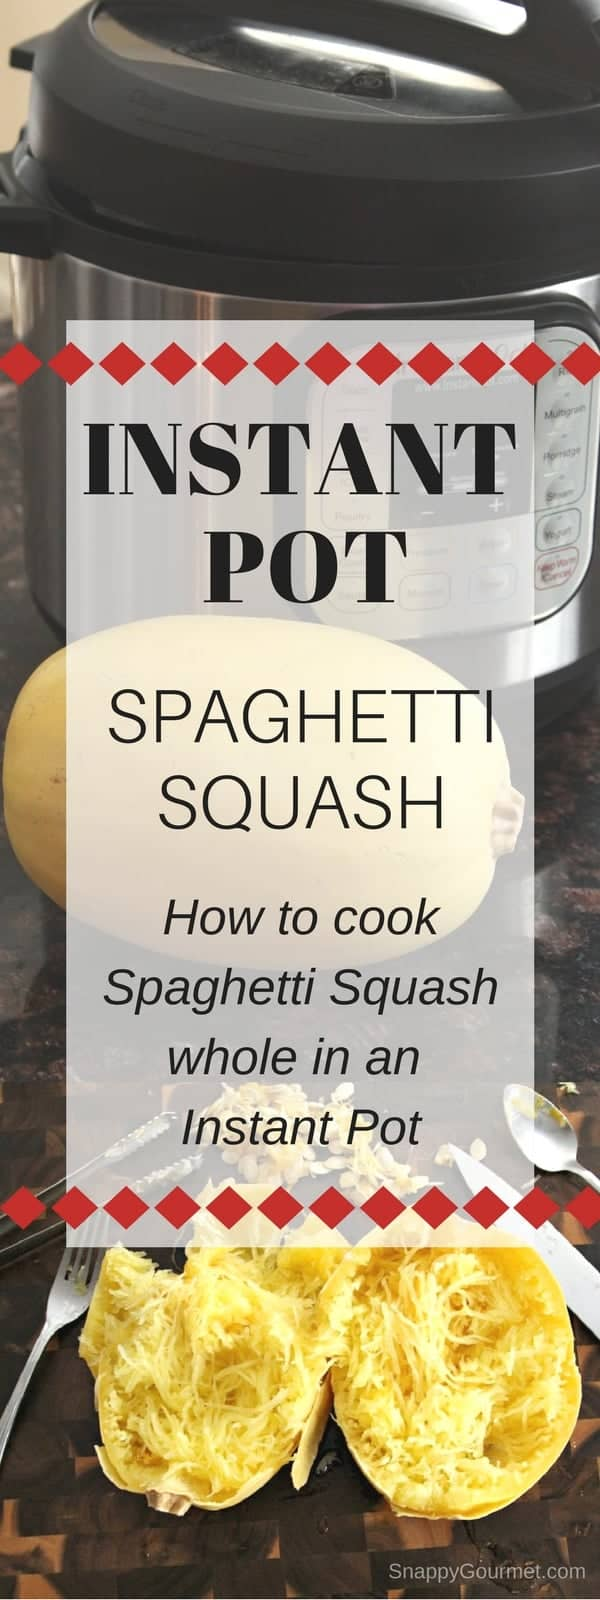 Instant Pot Spaghetti Squash - how to cook spaghetti squash whole